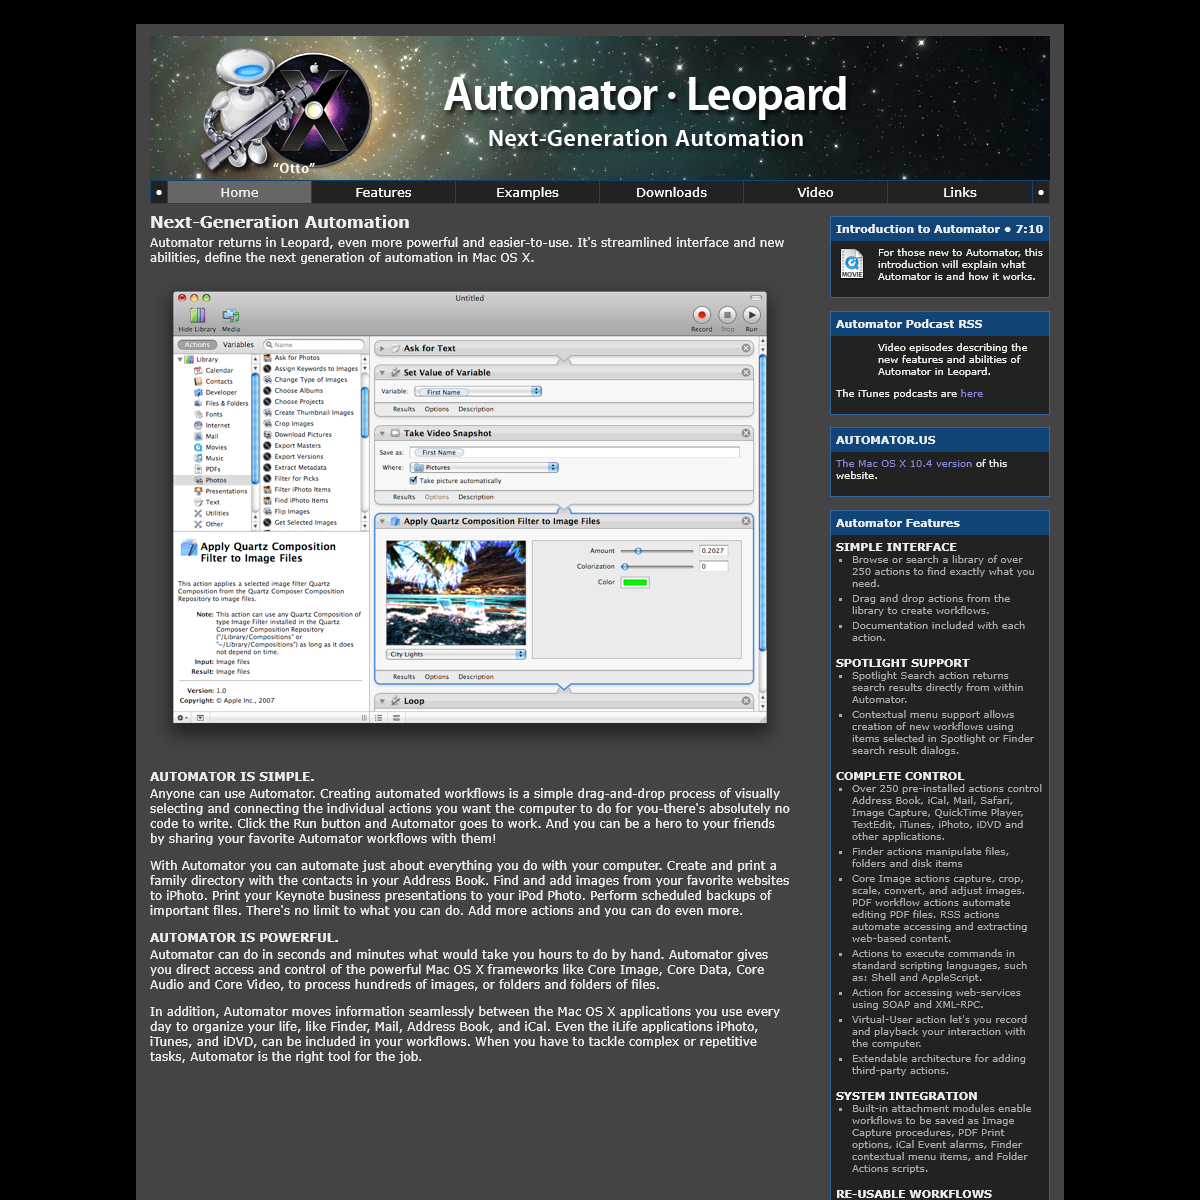 Automator in Leopard